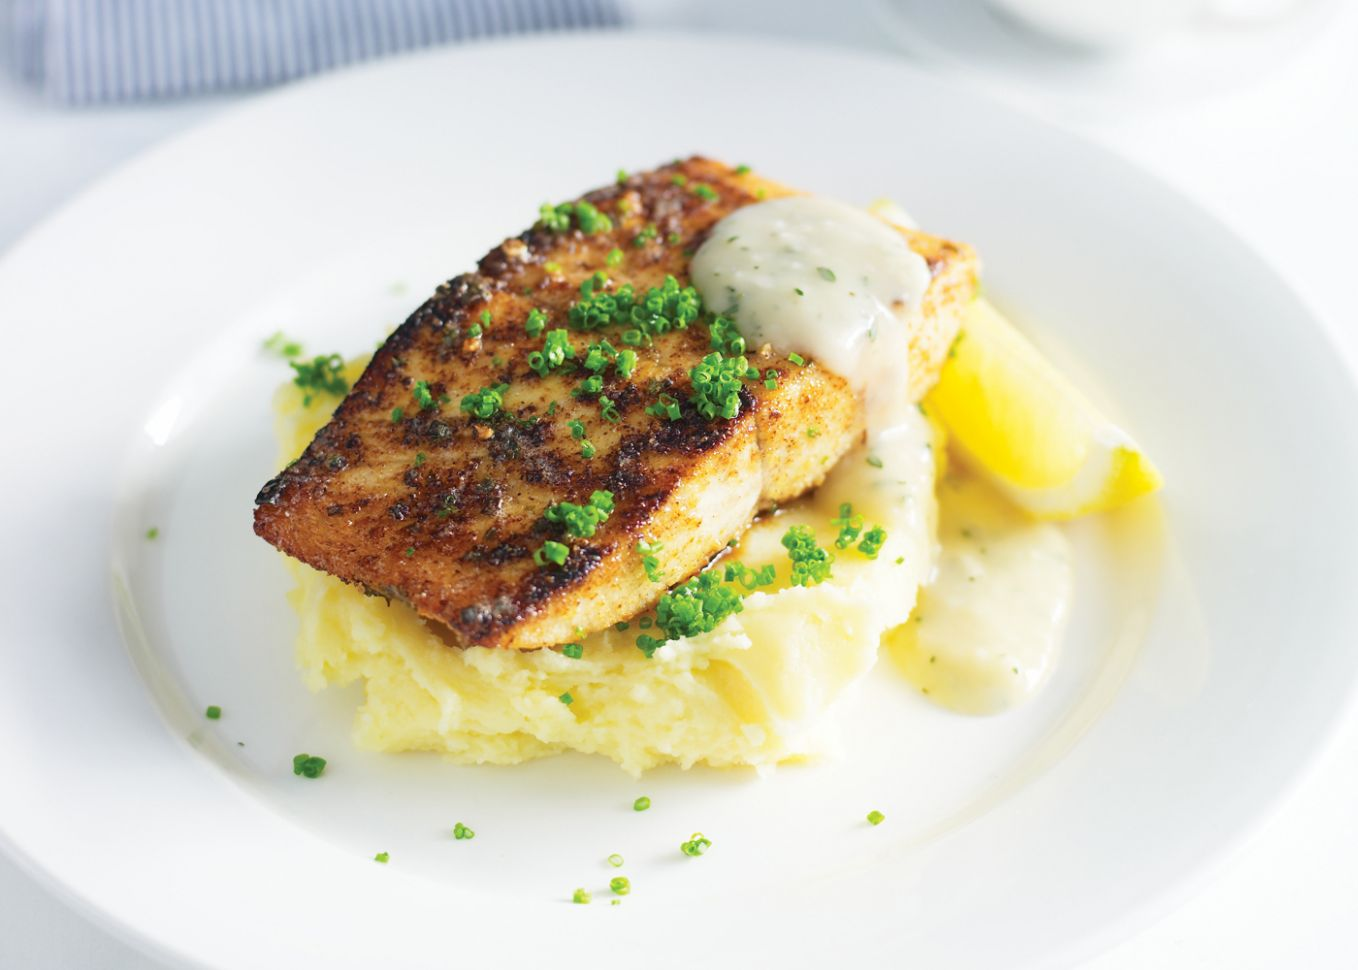 Pan-fried kingfish with creamy mashed potatoes | FOODWISE - Recipe Fish Dinner Party